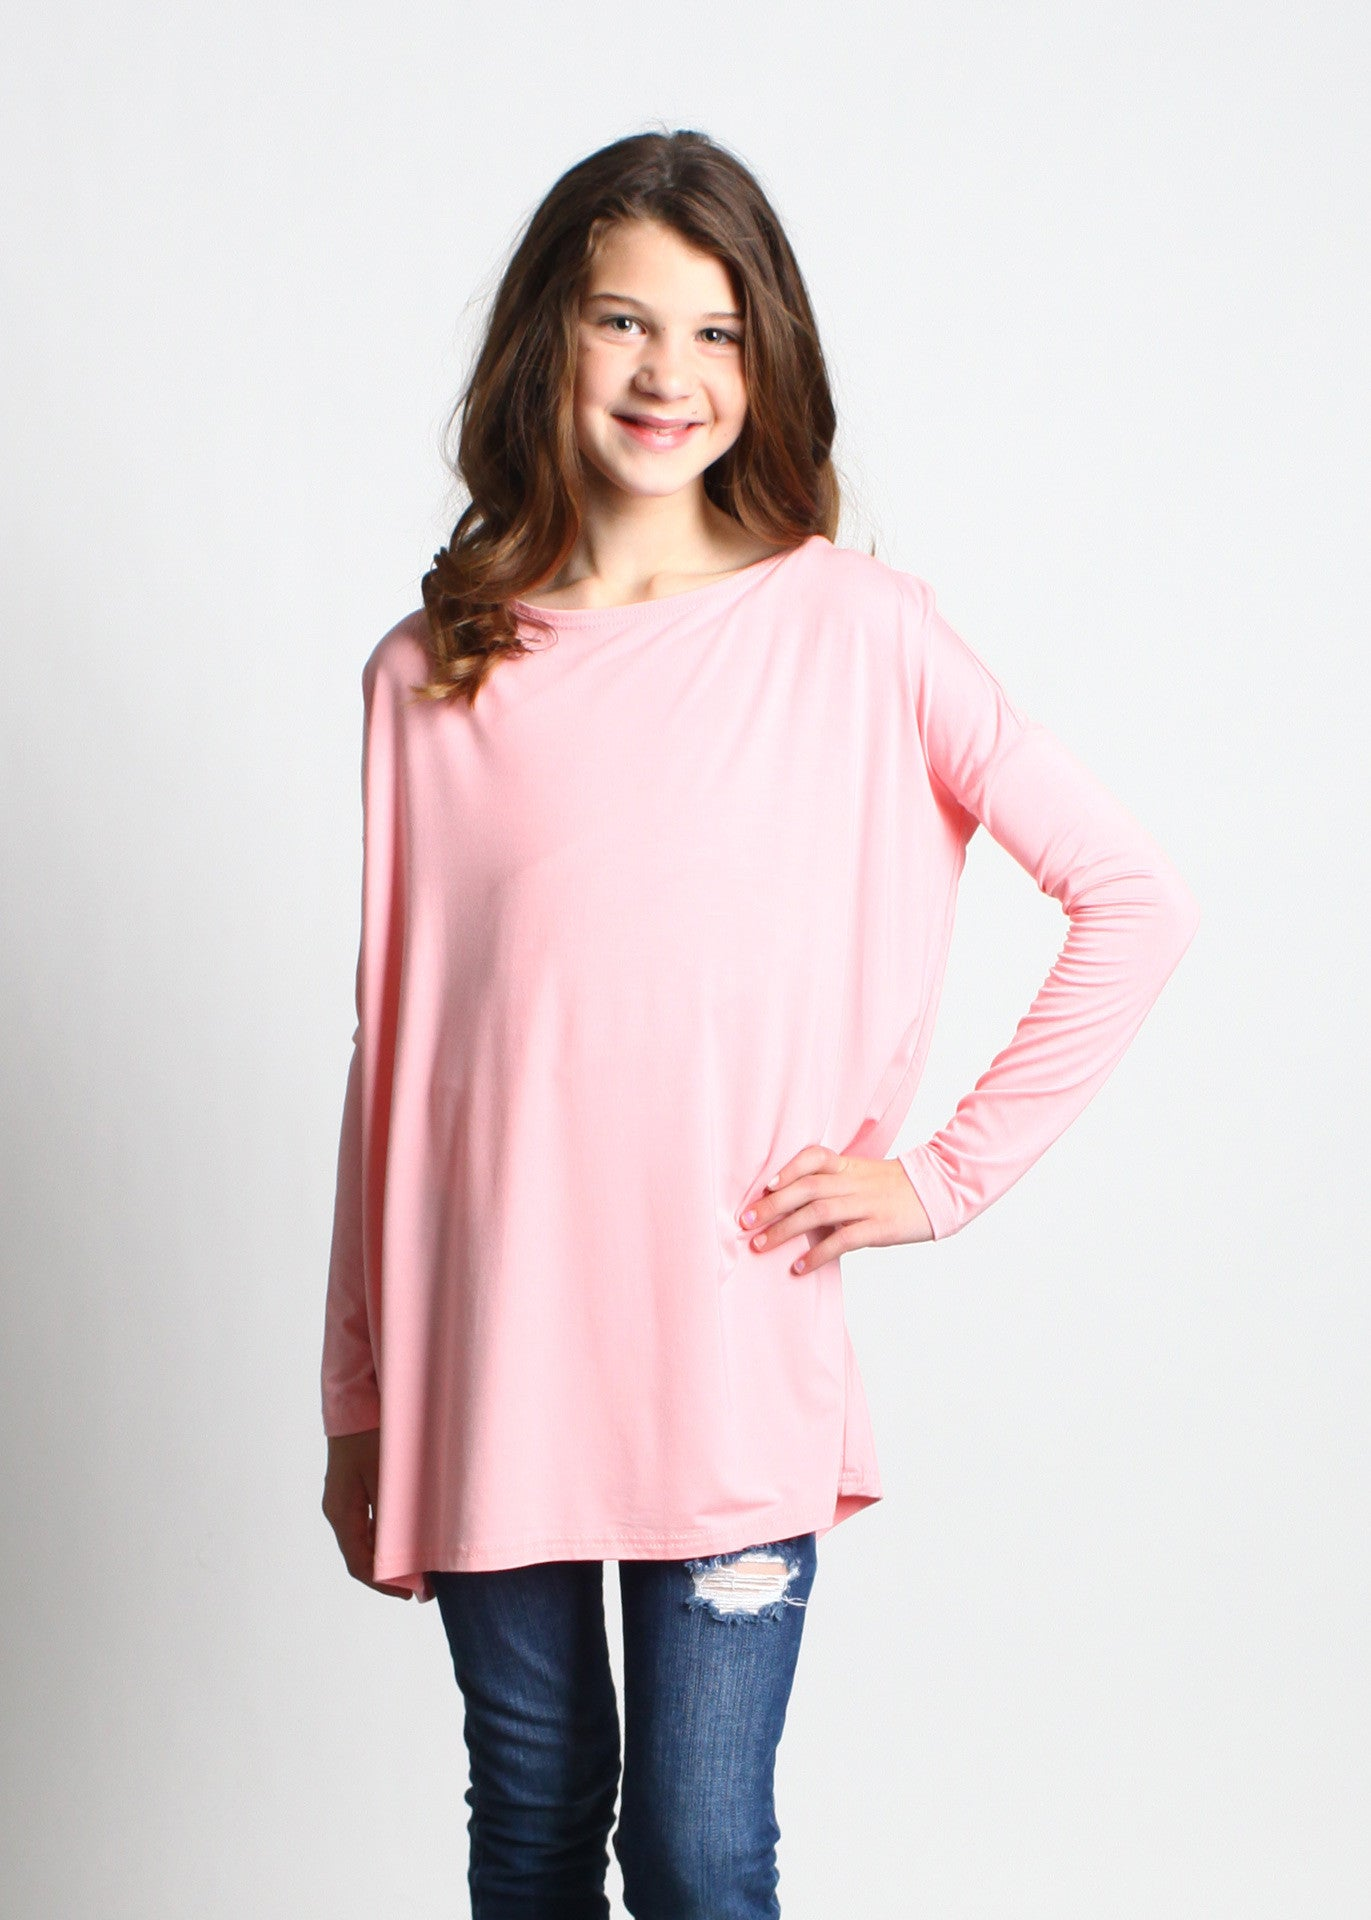 Original Kids Long Sleeve Top - Piko Clearance Center - 9